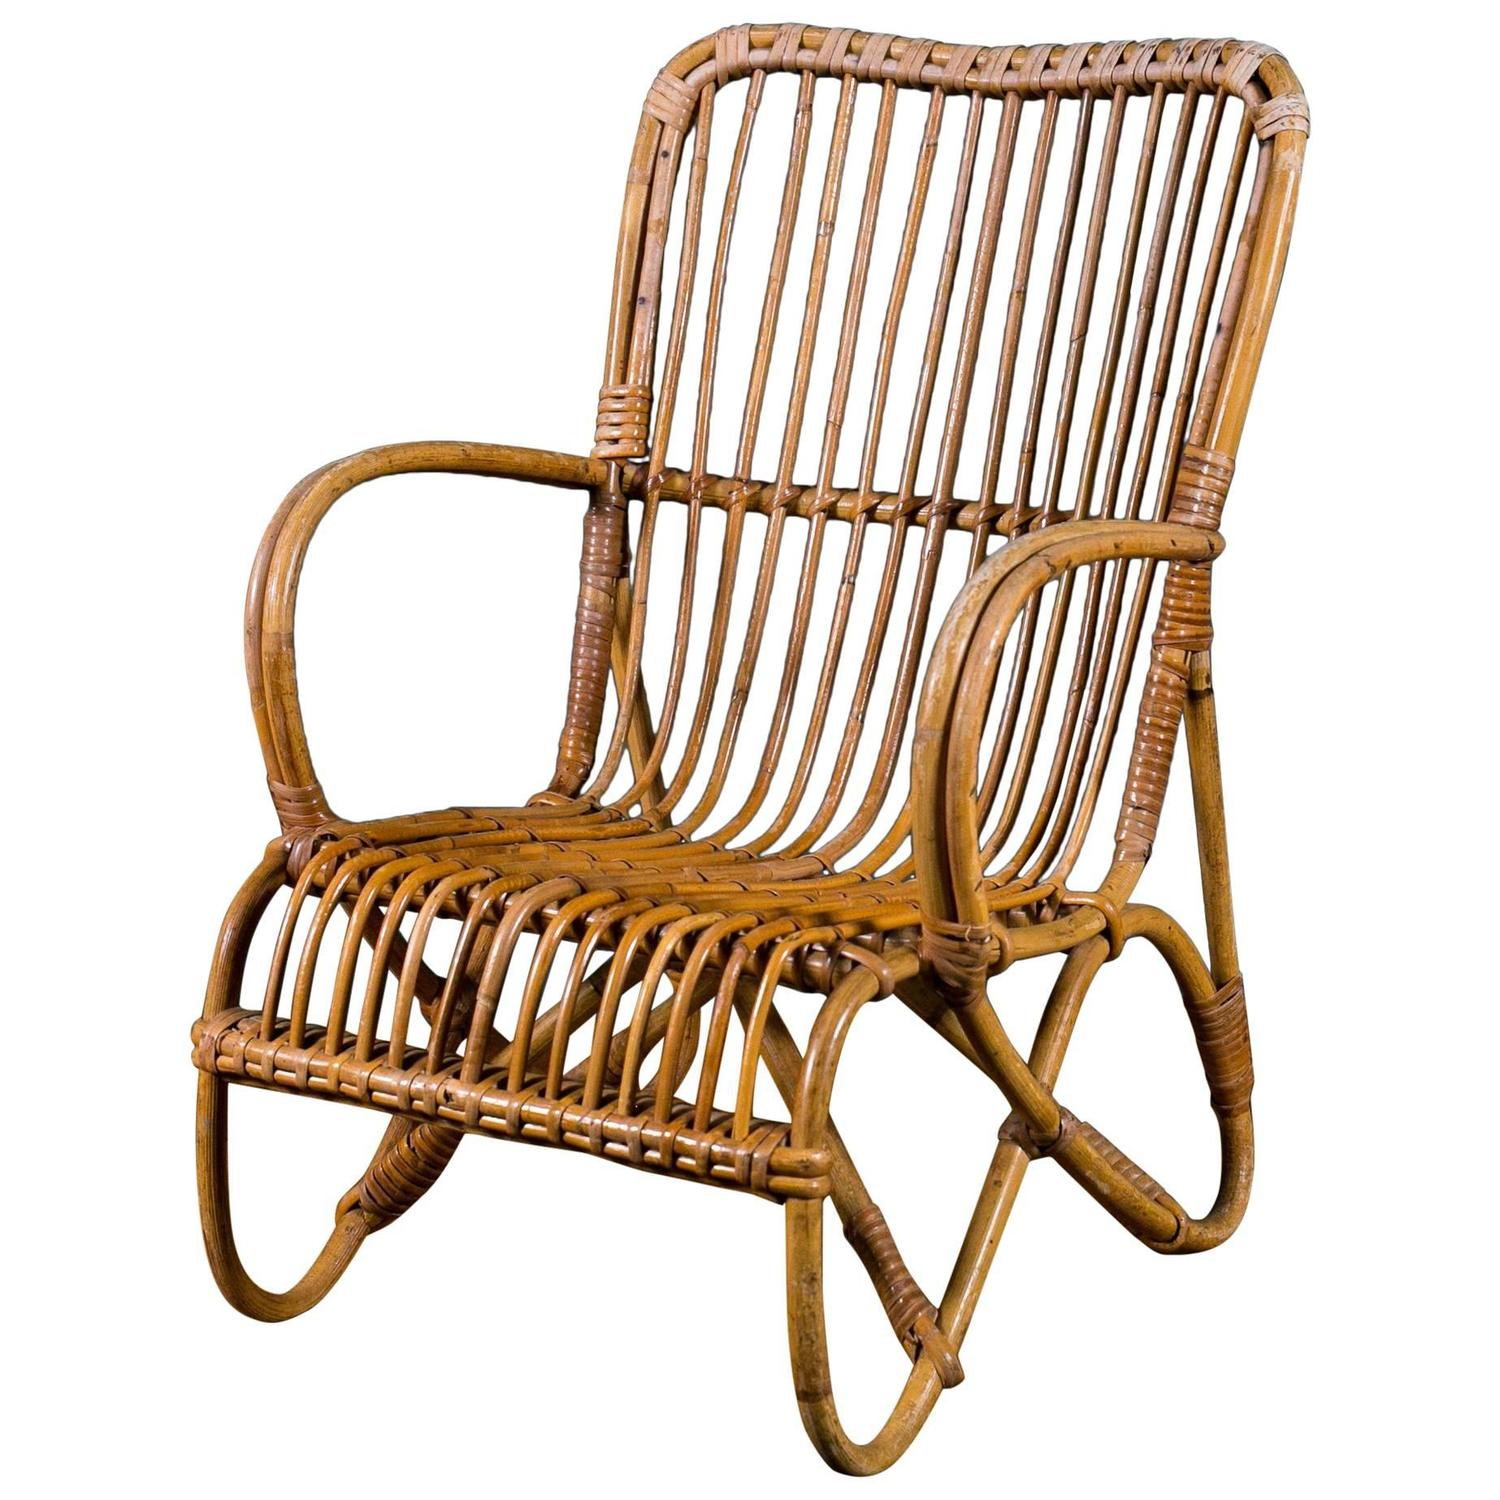 Vintage Rattan Chairs Vintage French Rattan Child 39s Chair For Sale At 1stdibs